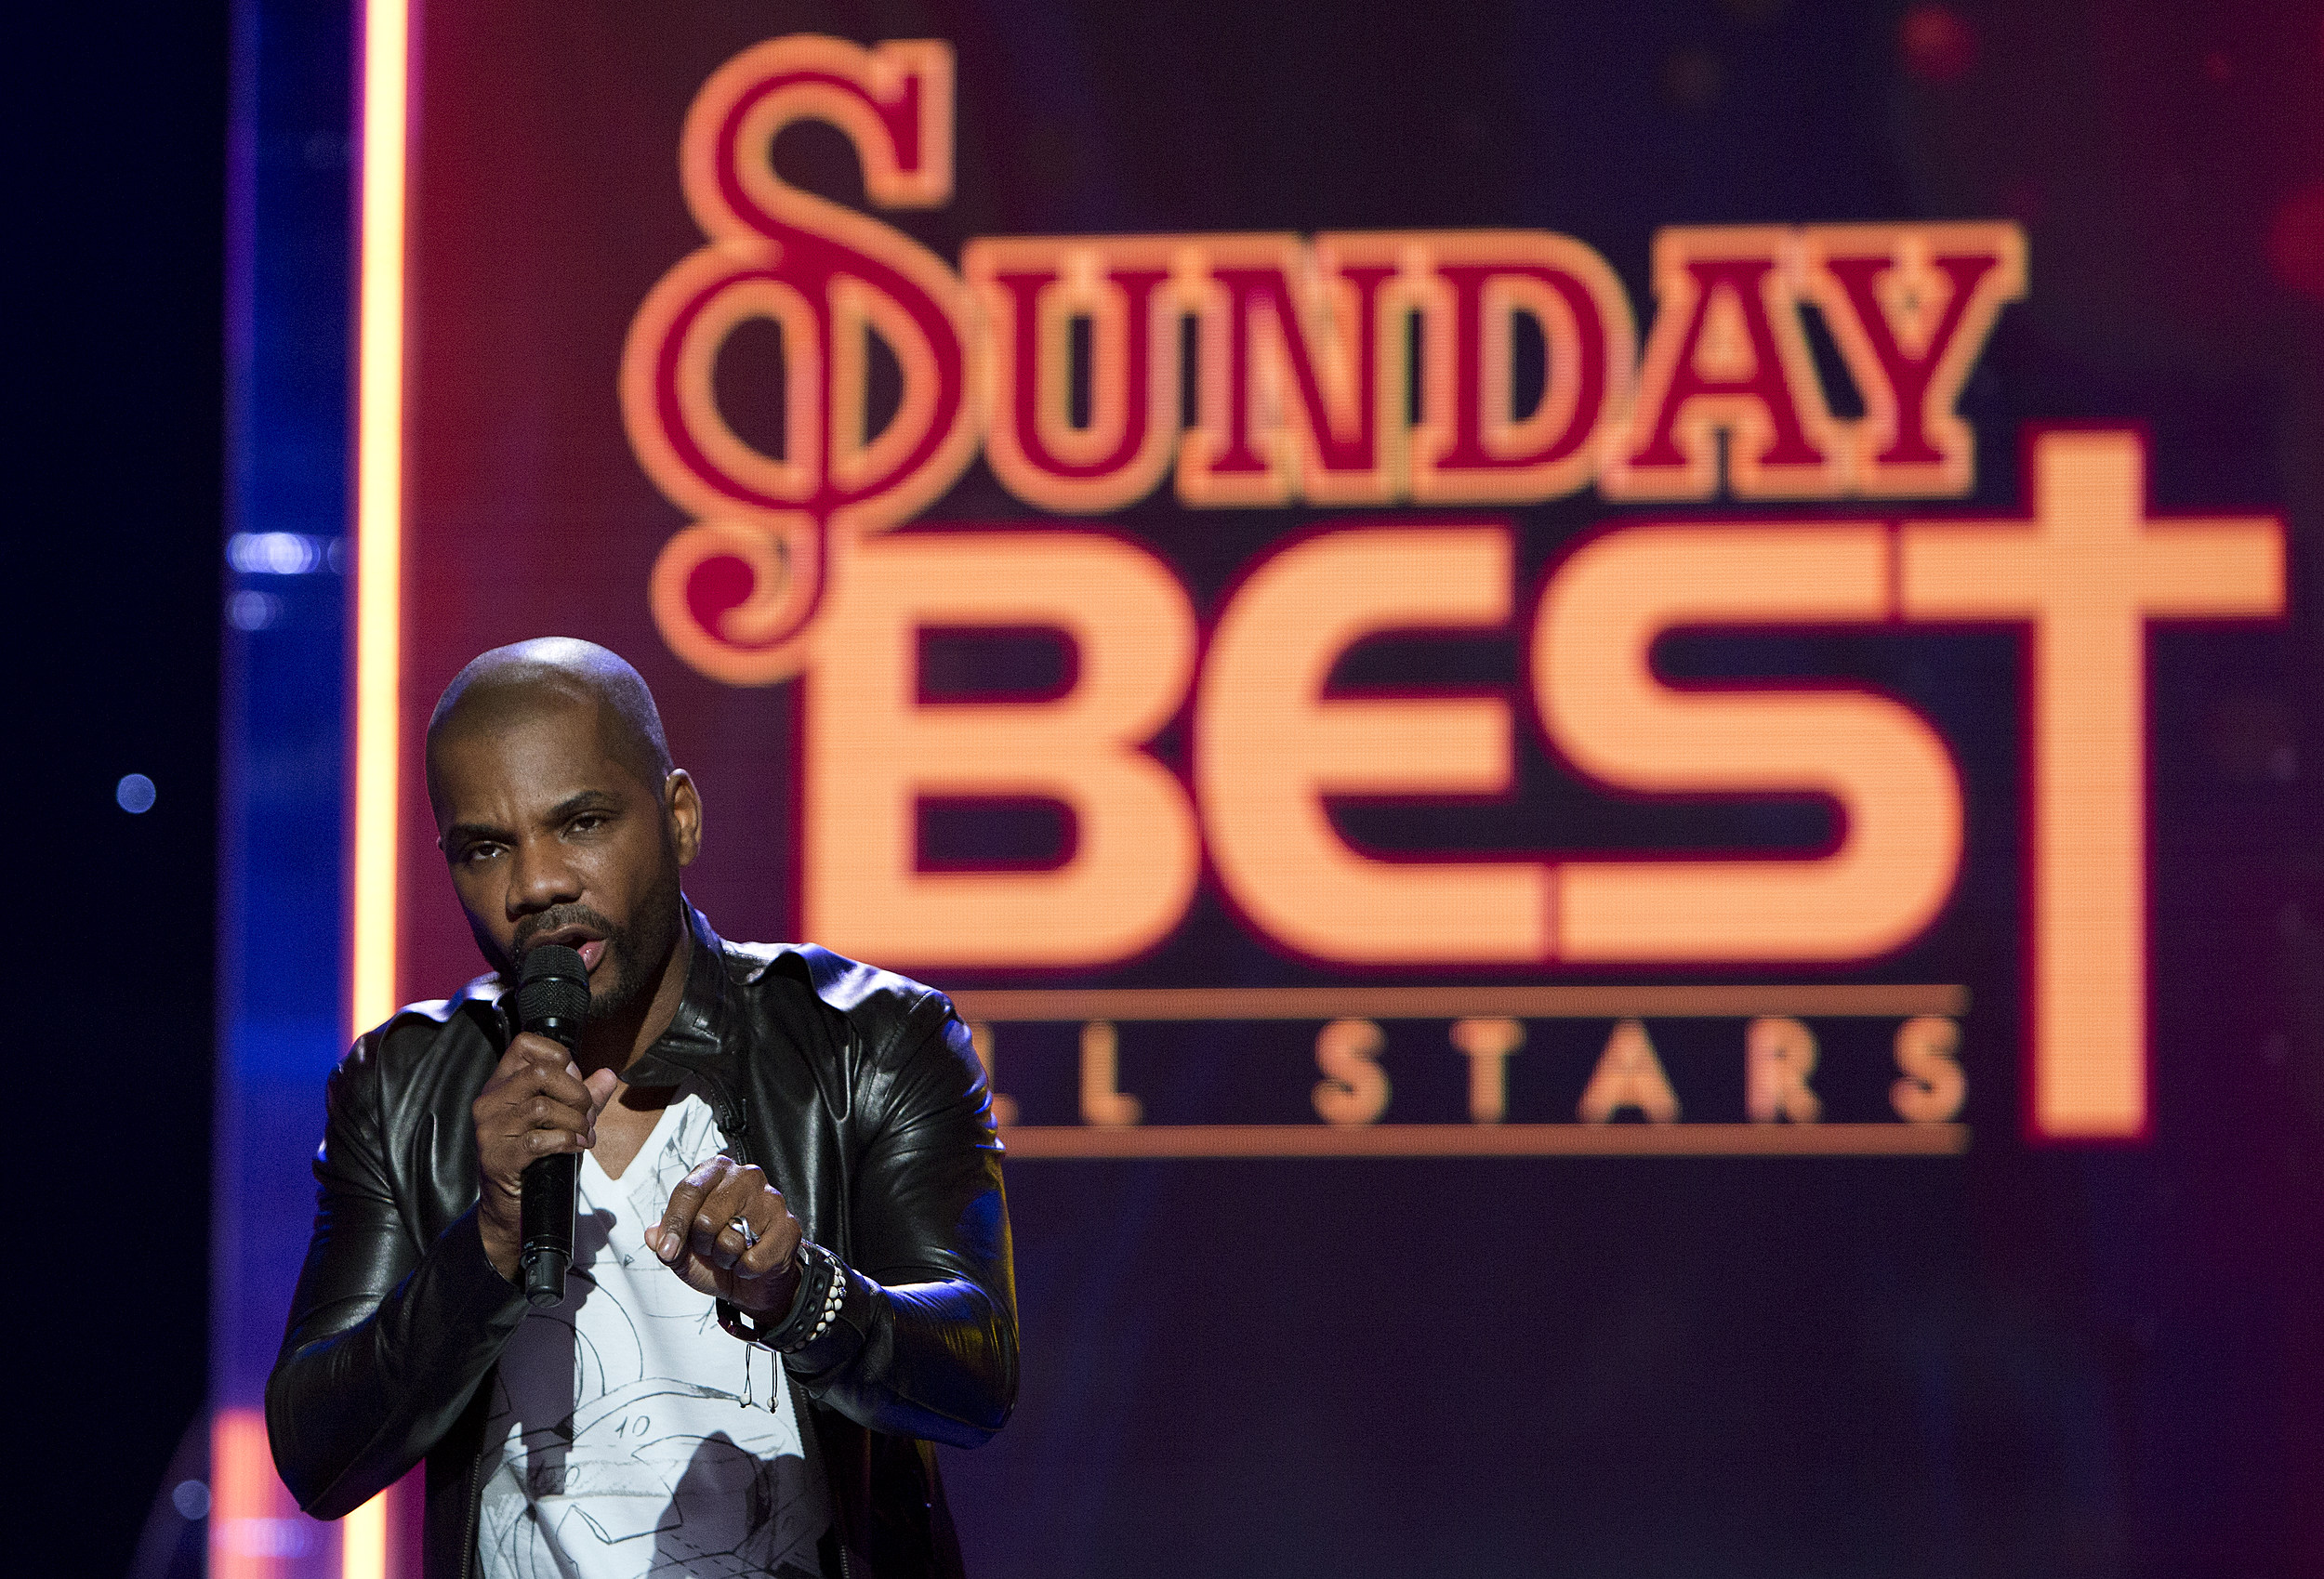 Best Singing Auditions 2020 Attention Gospel Singers: BET's Sunday Best Auditions Are Open